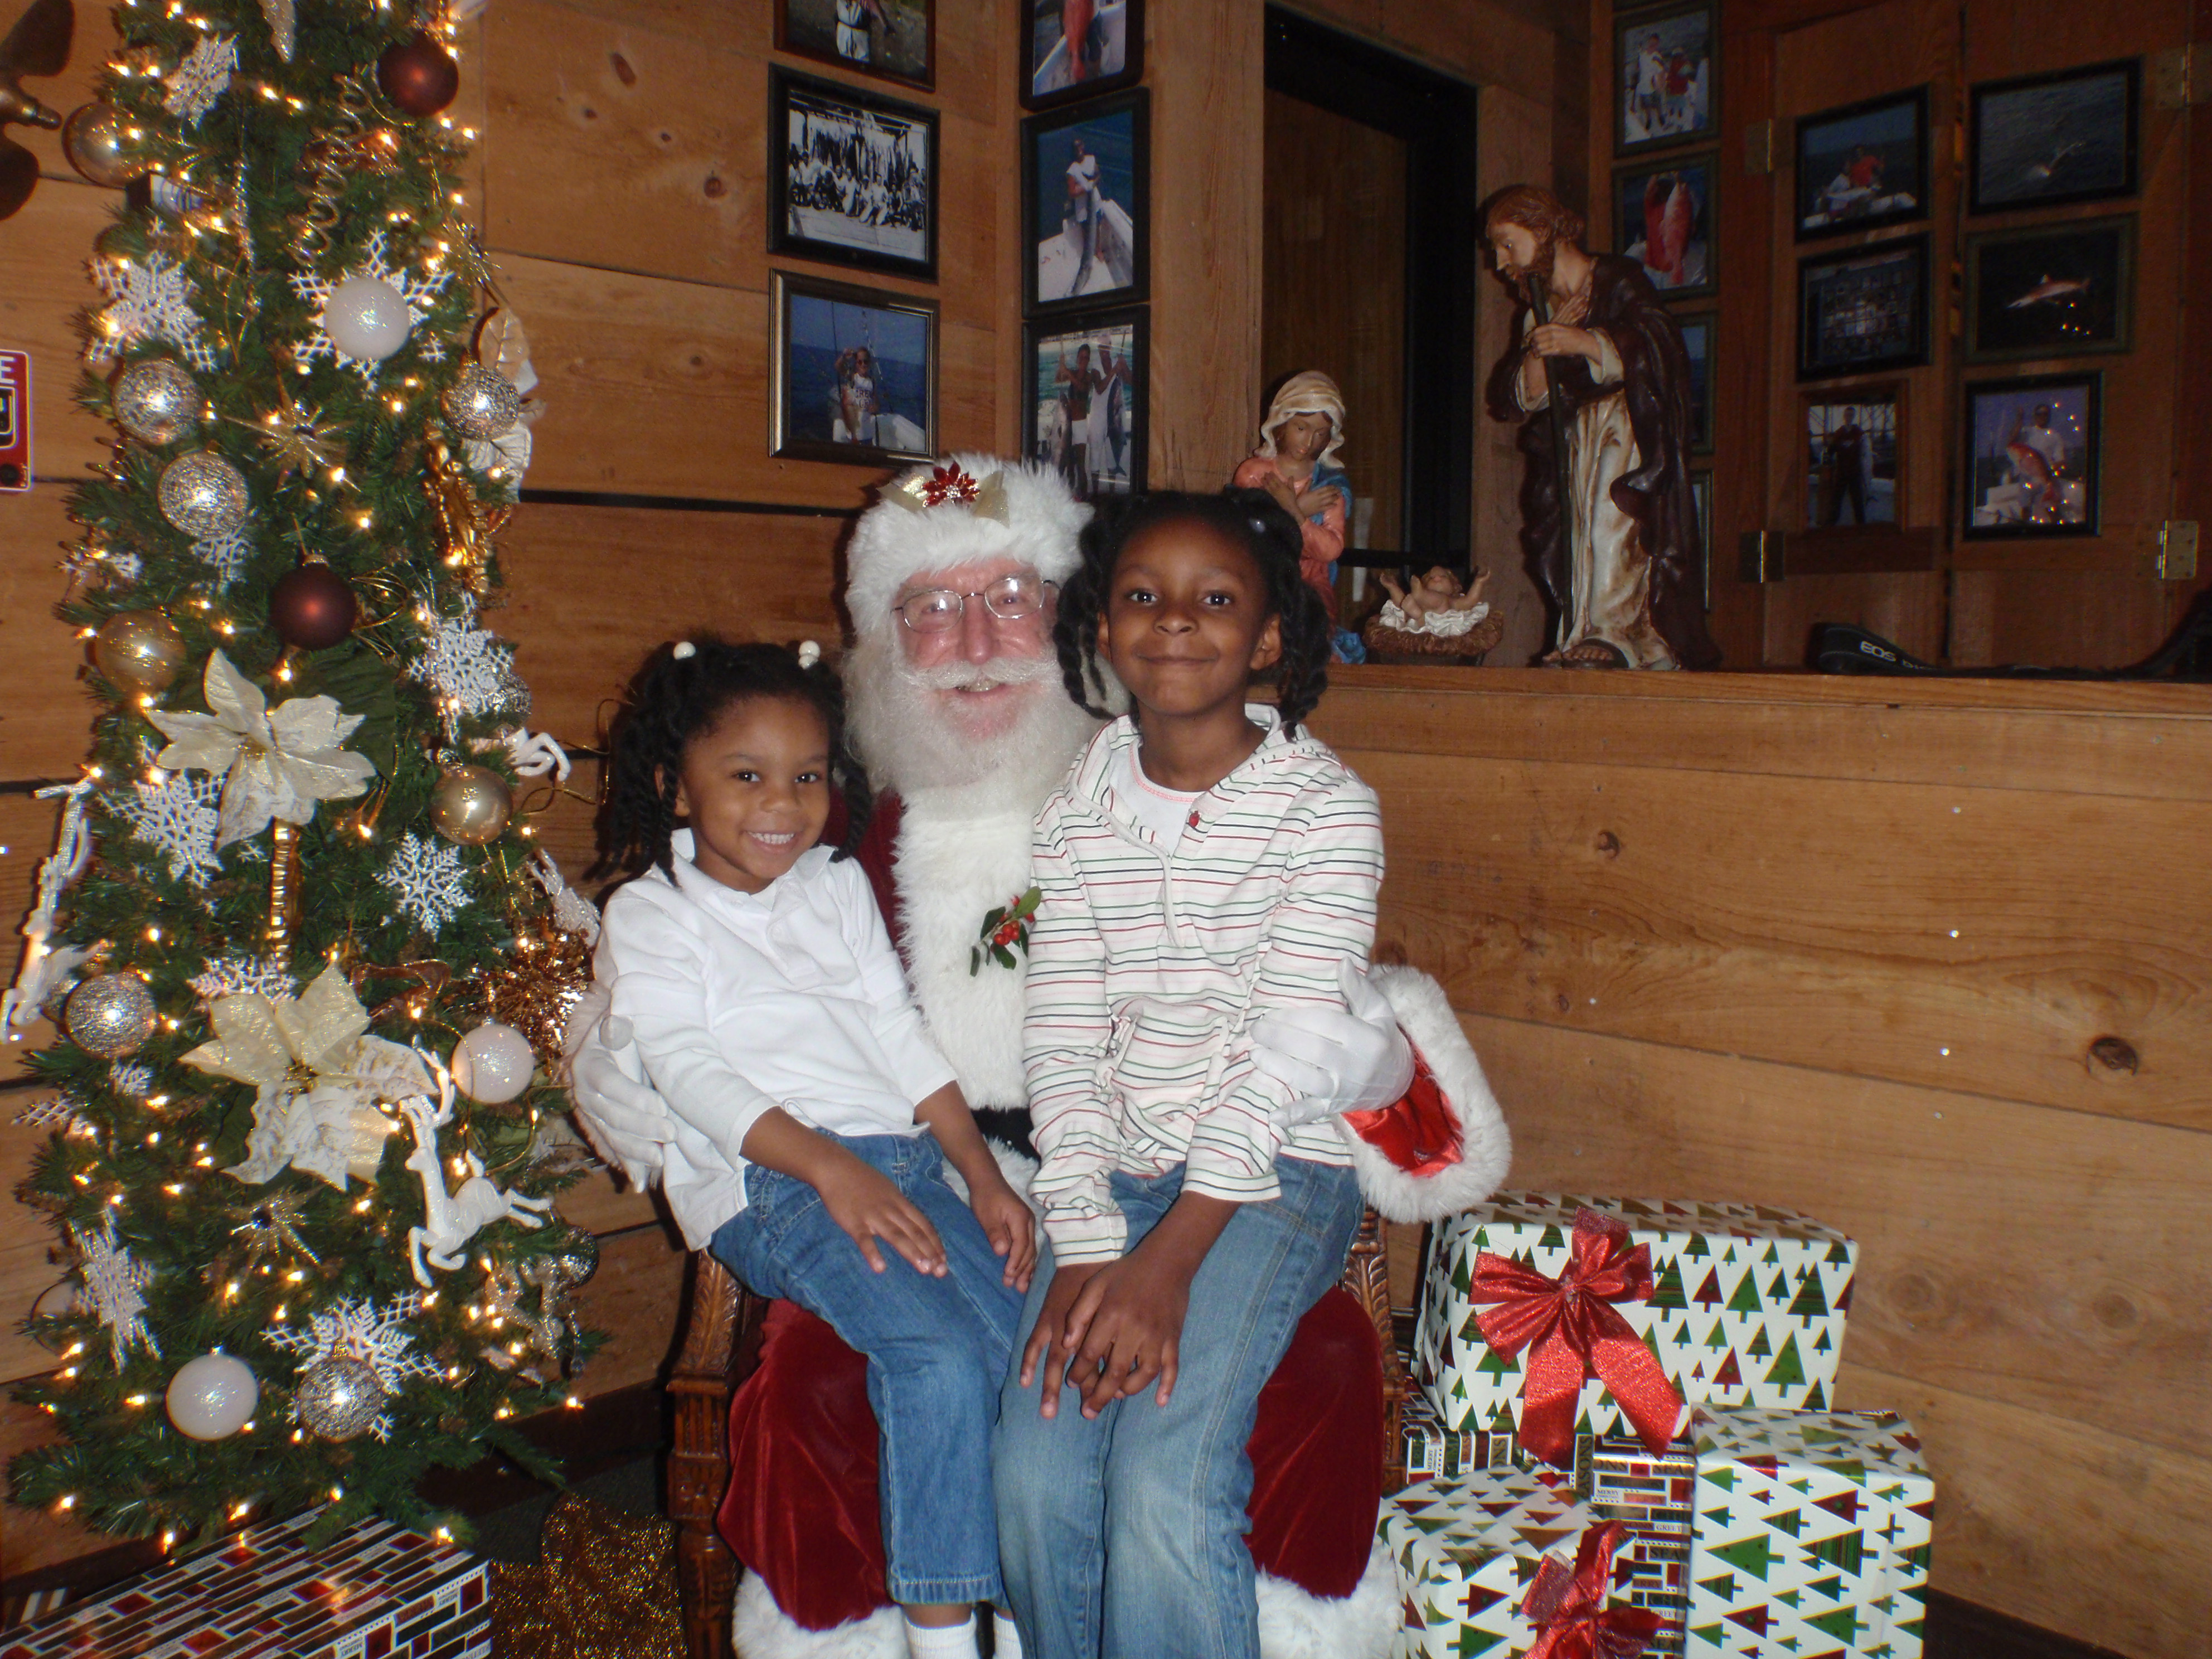 santa with two children